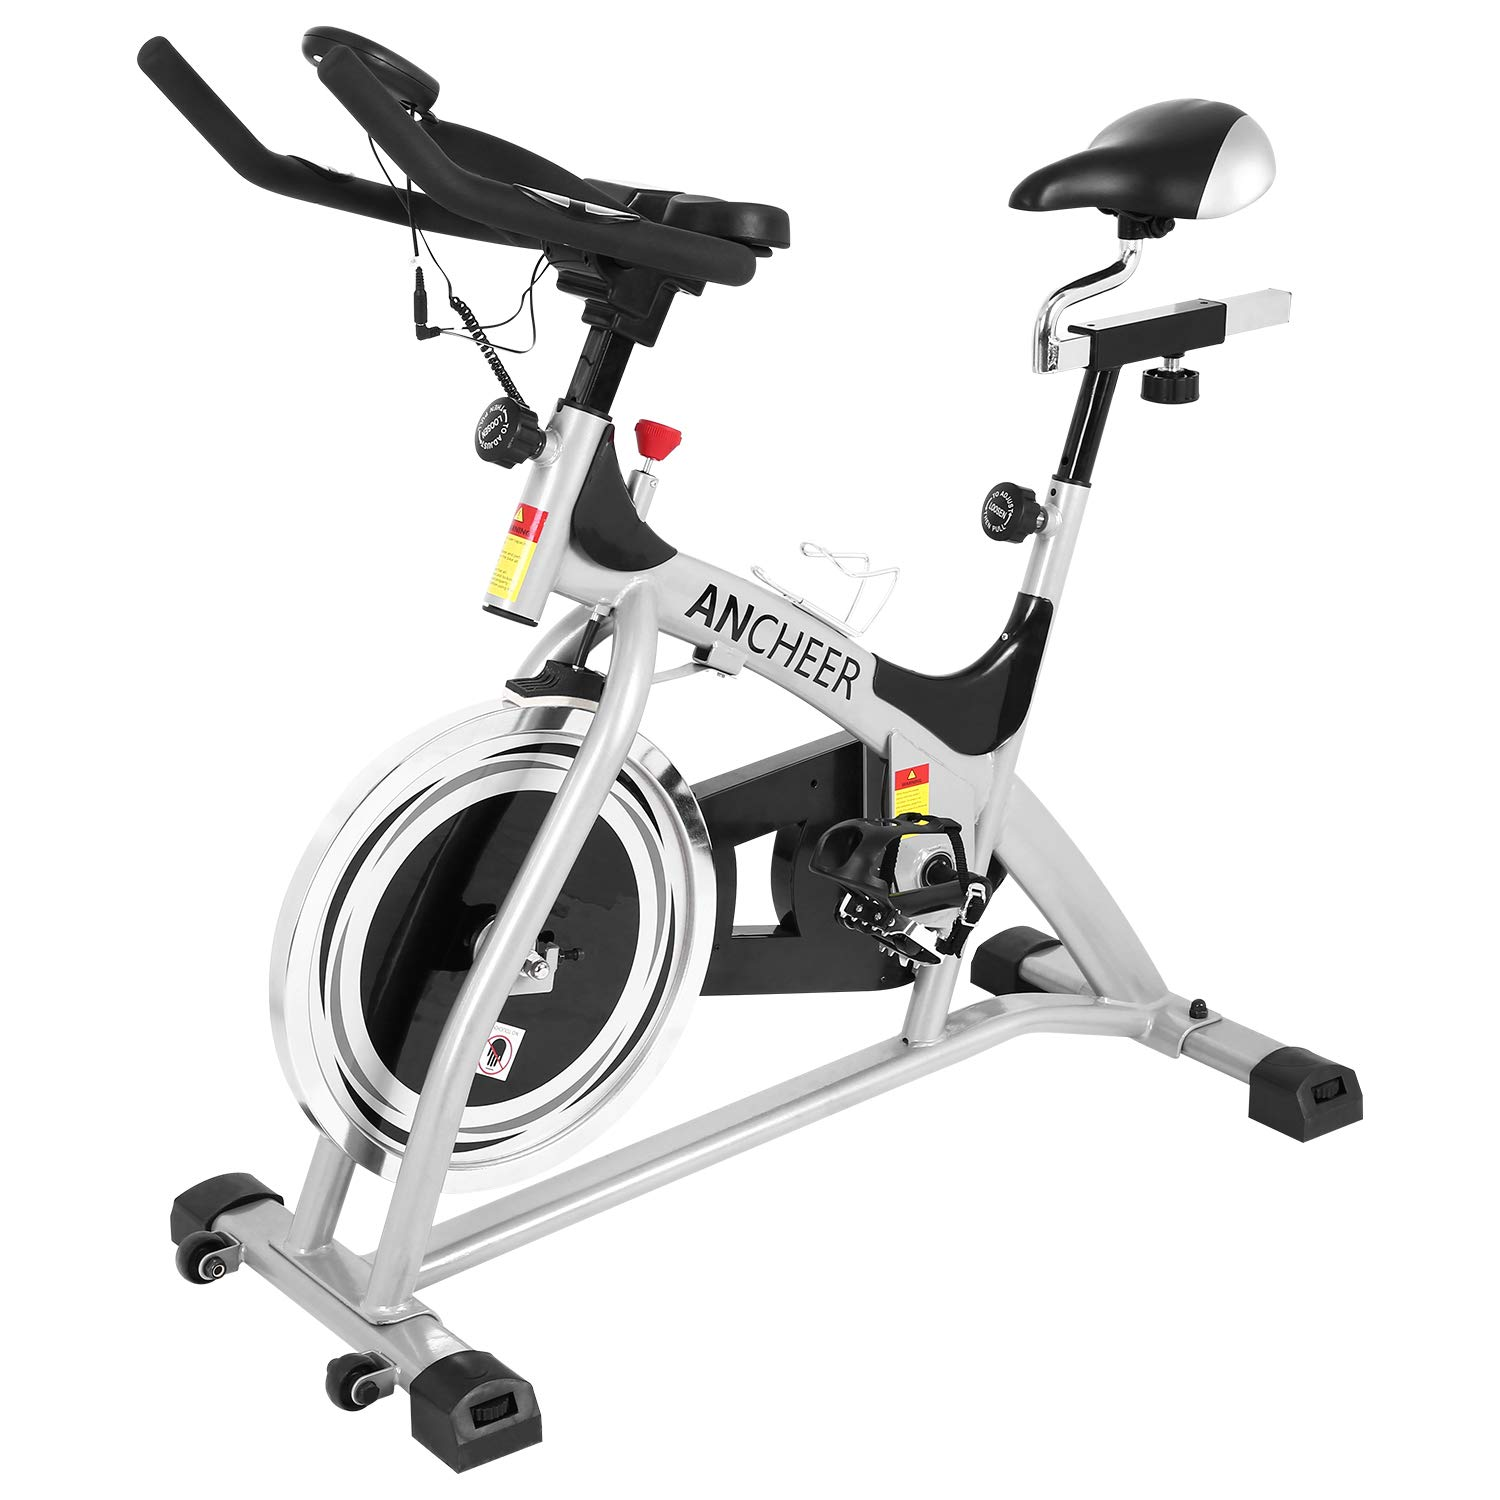 ANCHEER Stationary Bike, 40 LBS Flywheel Belt Drive Indoor Cycling Exercise Bike with Pulse, Elbow Tray (Model: ANCHEER-A5001) (Sliver) by ANCHEER (Image #1)